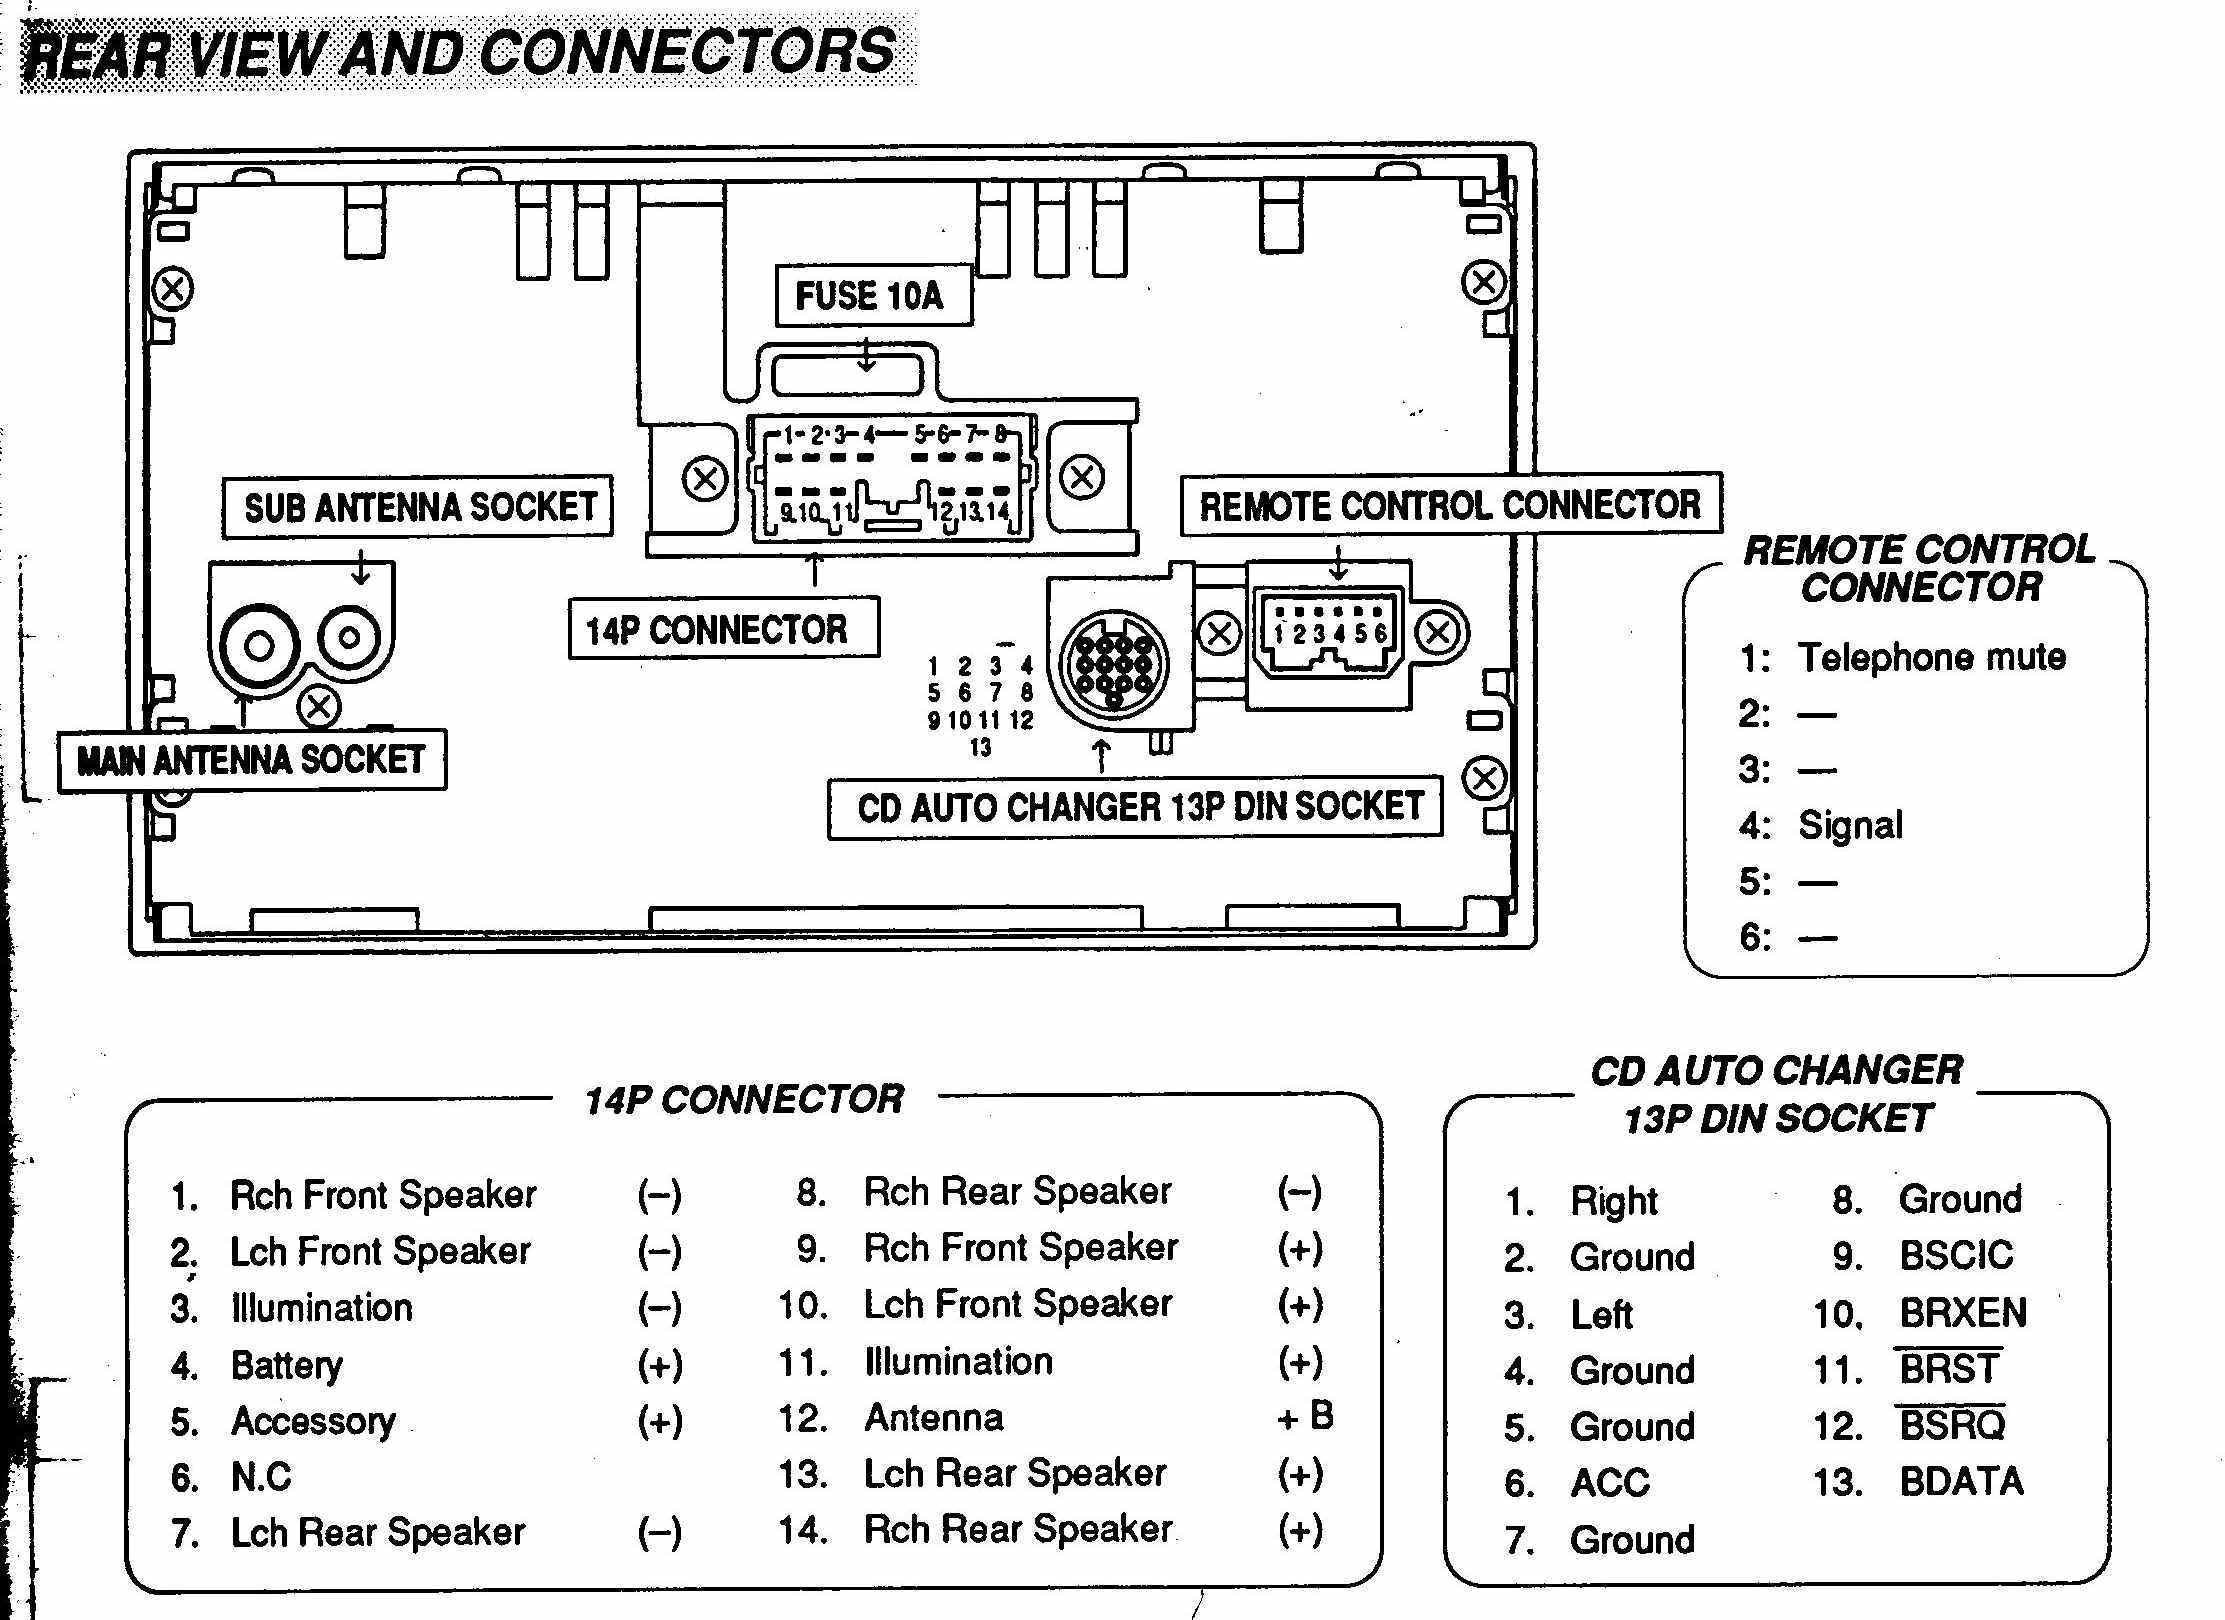 magnificent clarion vrx485vd wiring diagram adornment best images clarion stereo wiring harness magnificent clarion vrx485vd wiring diagram images wiring diagram